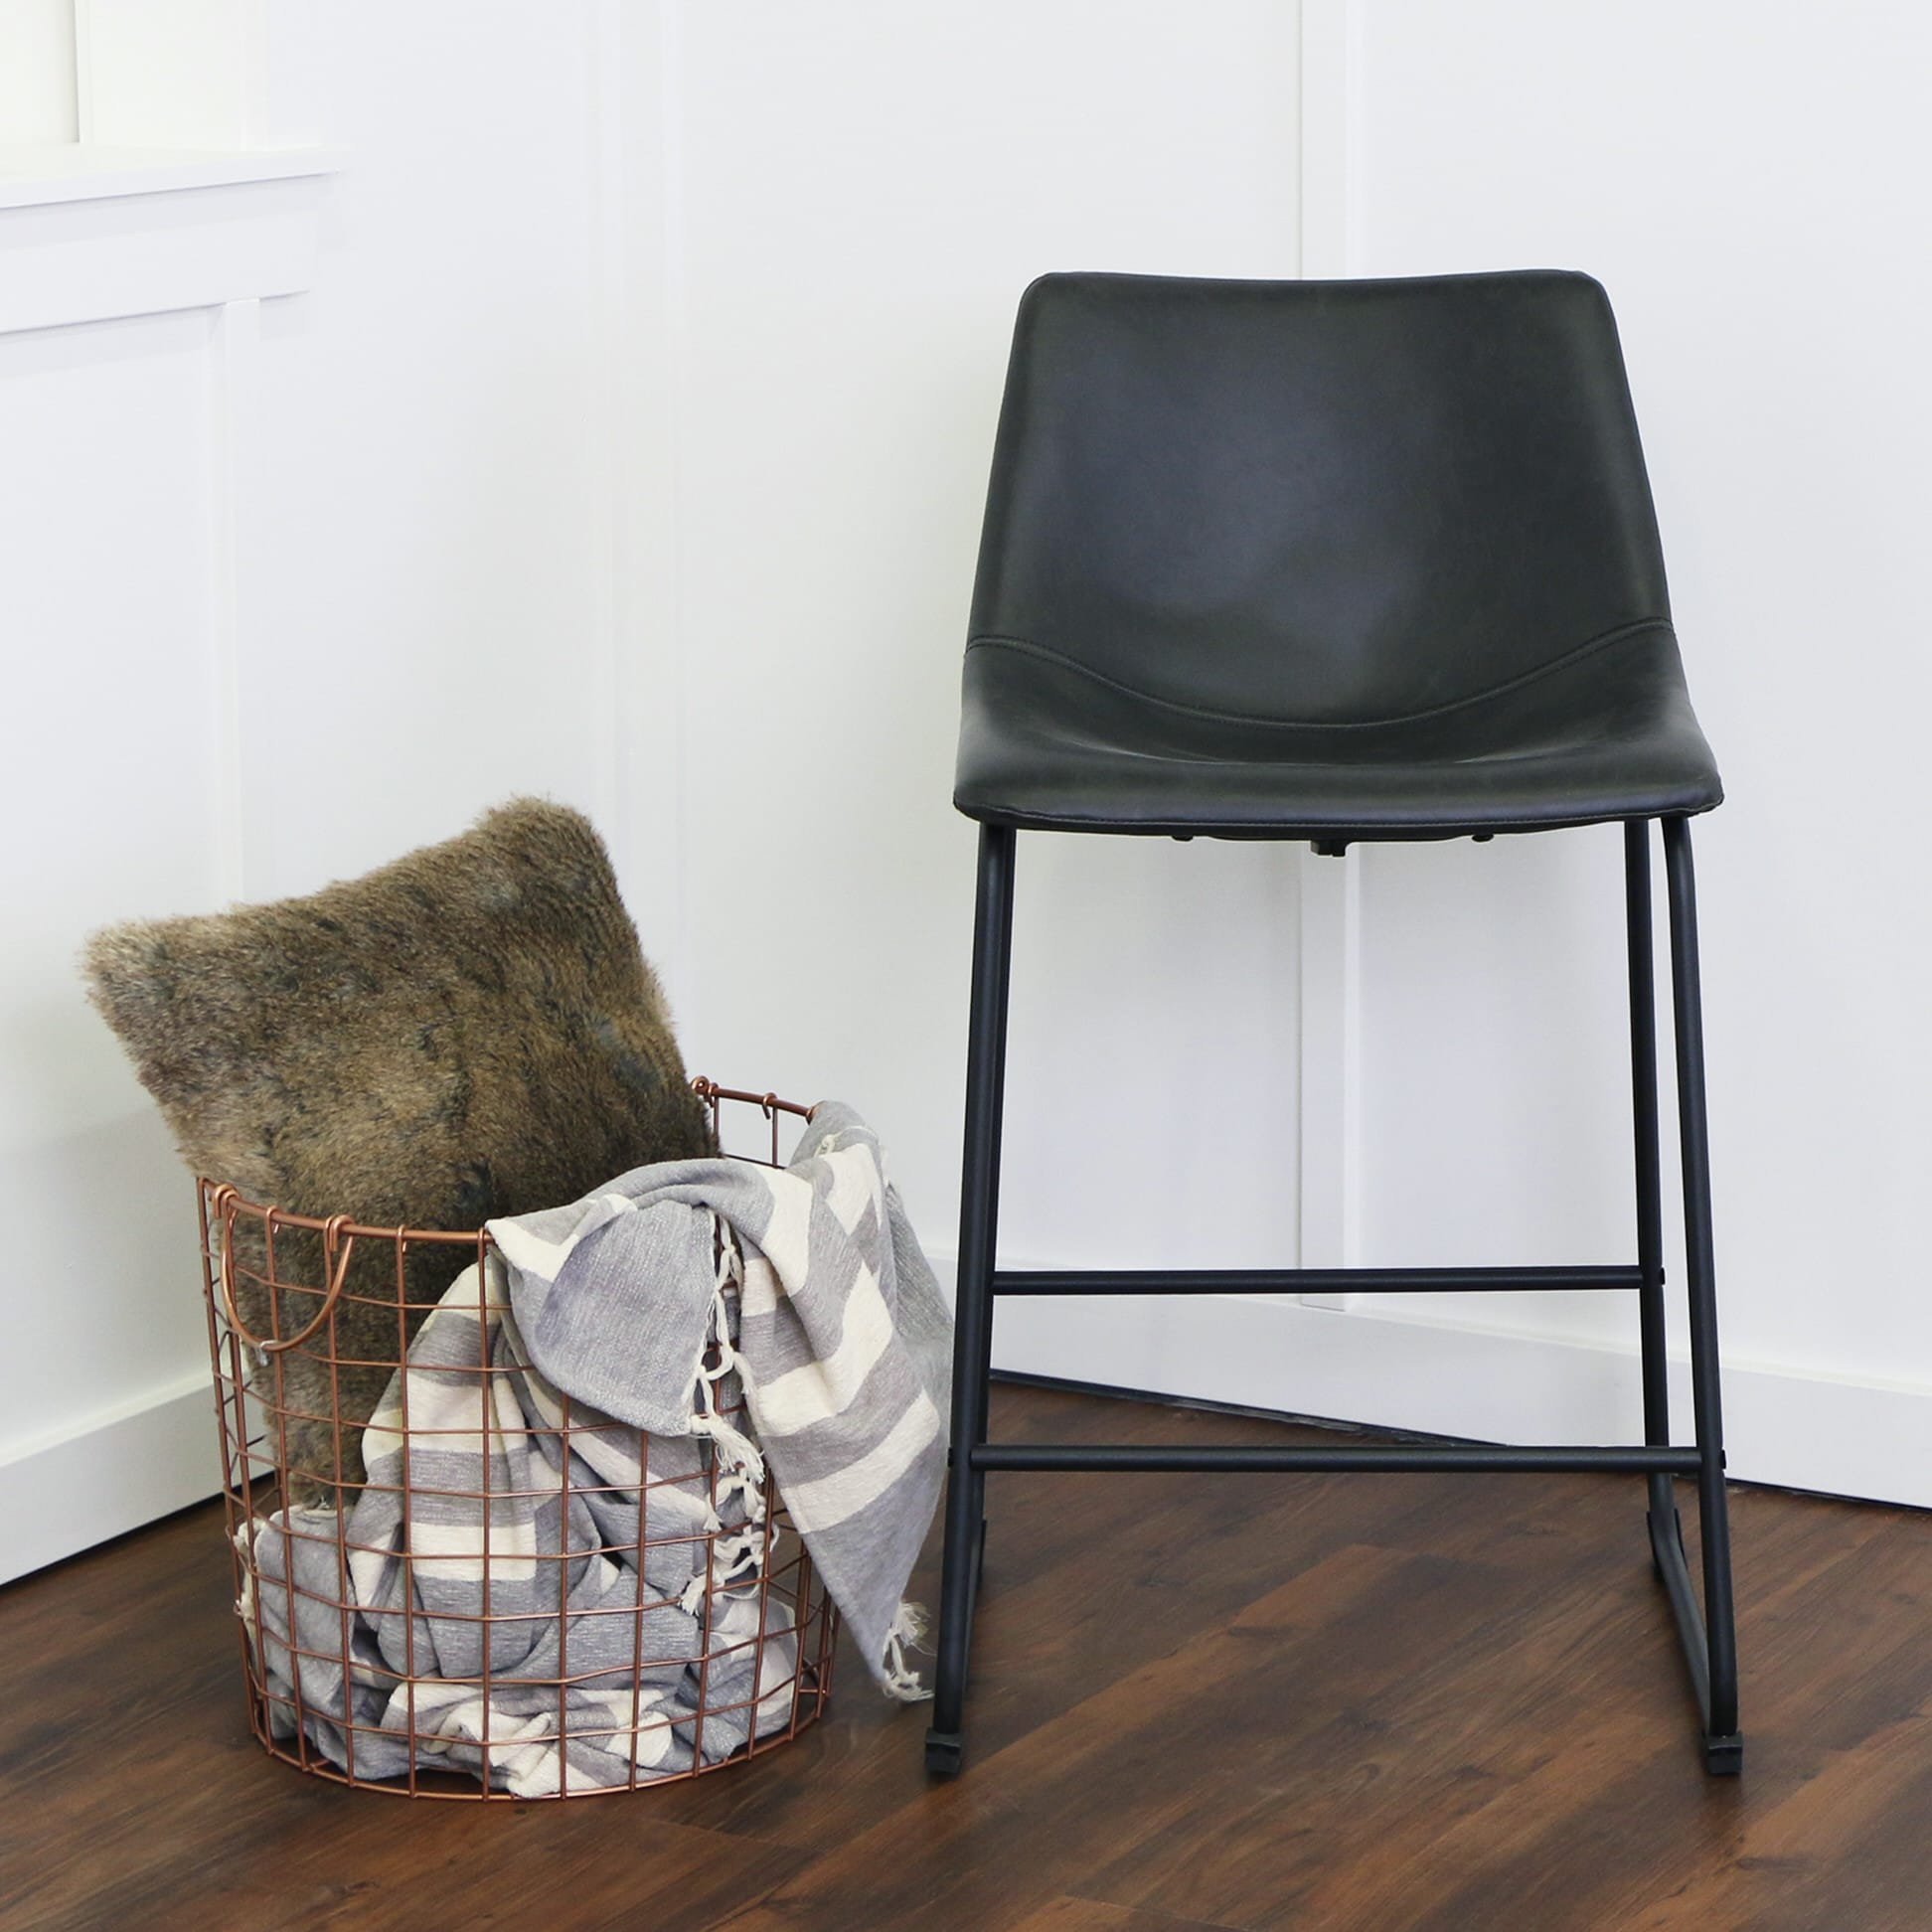 wasatch faux leather counter stools set of 2 black by walker edison - Leather Counter Stools